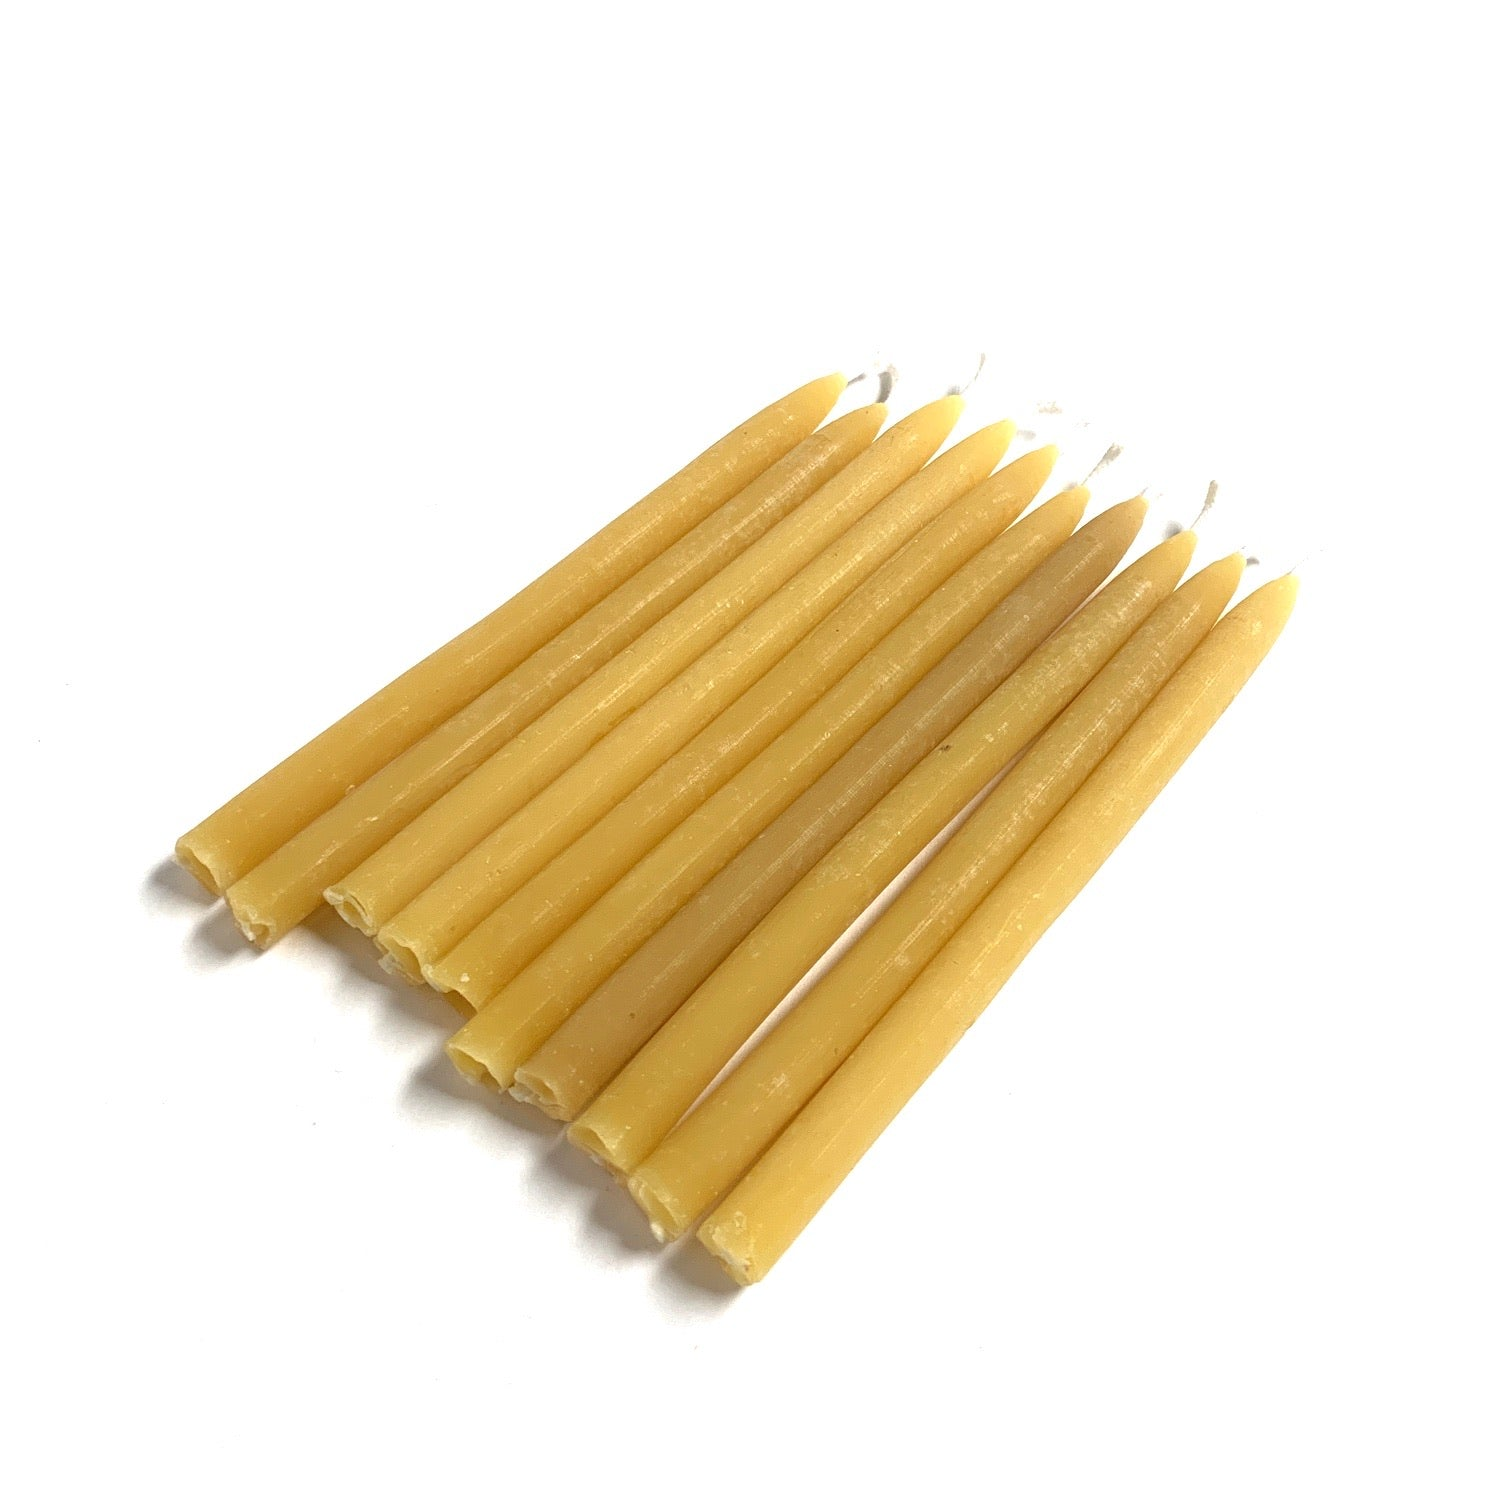 "Candle Sticks - 5"" Mini Taper Beeswax Candles - 10pcs"